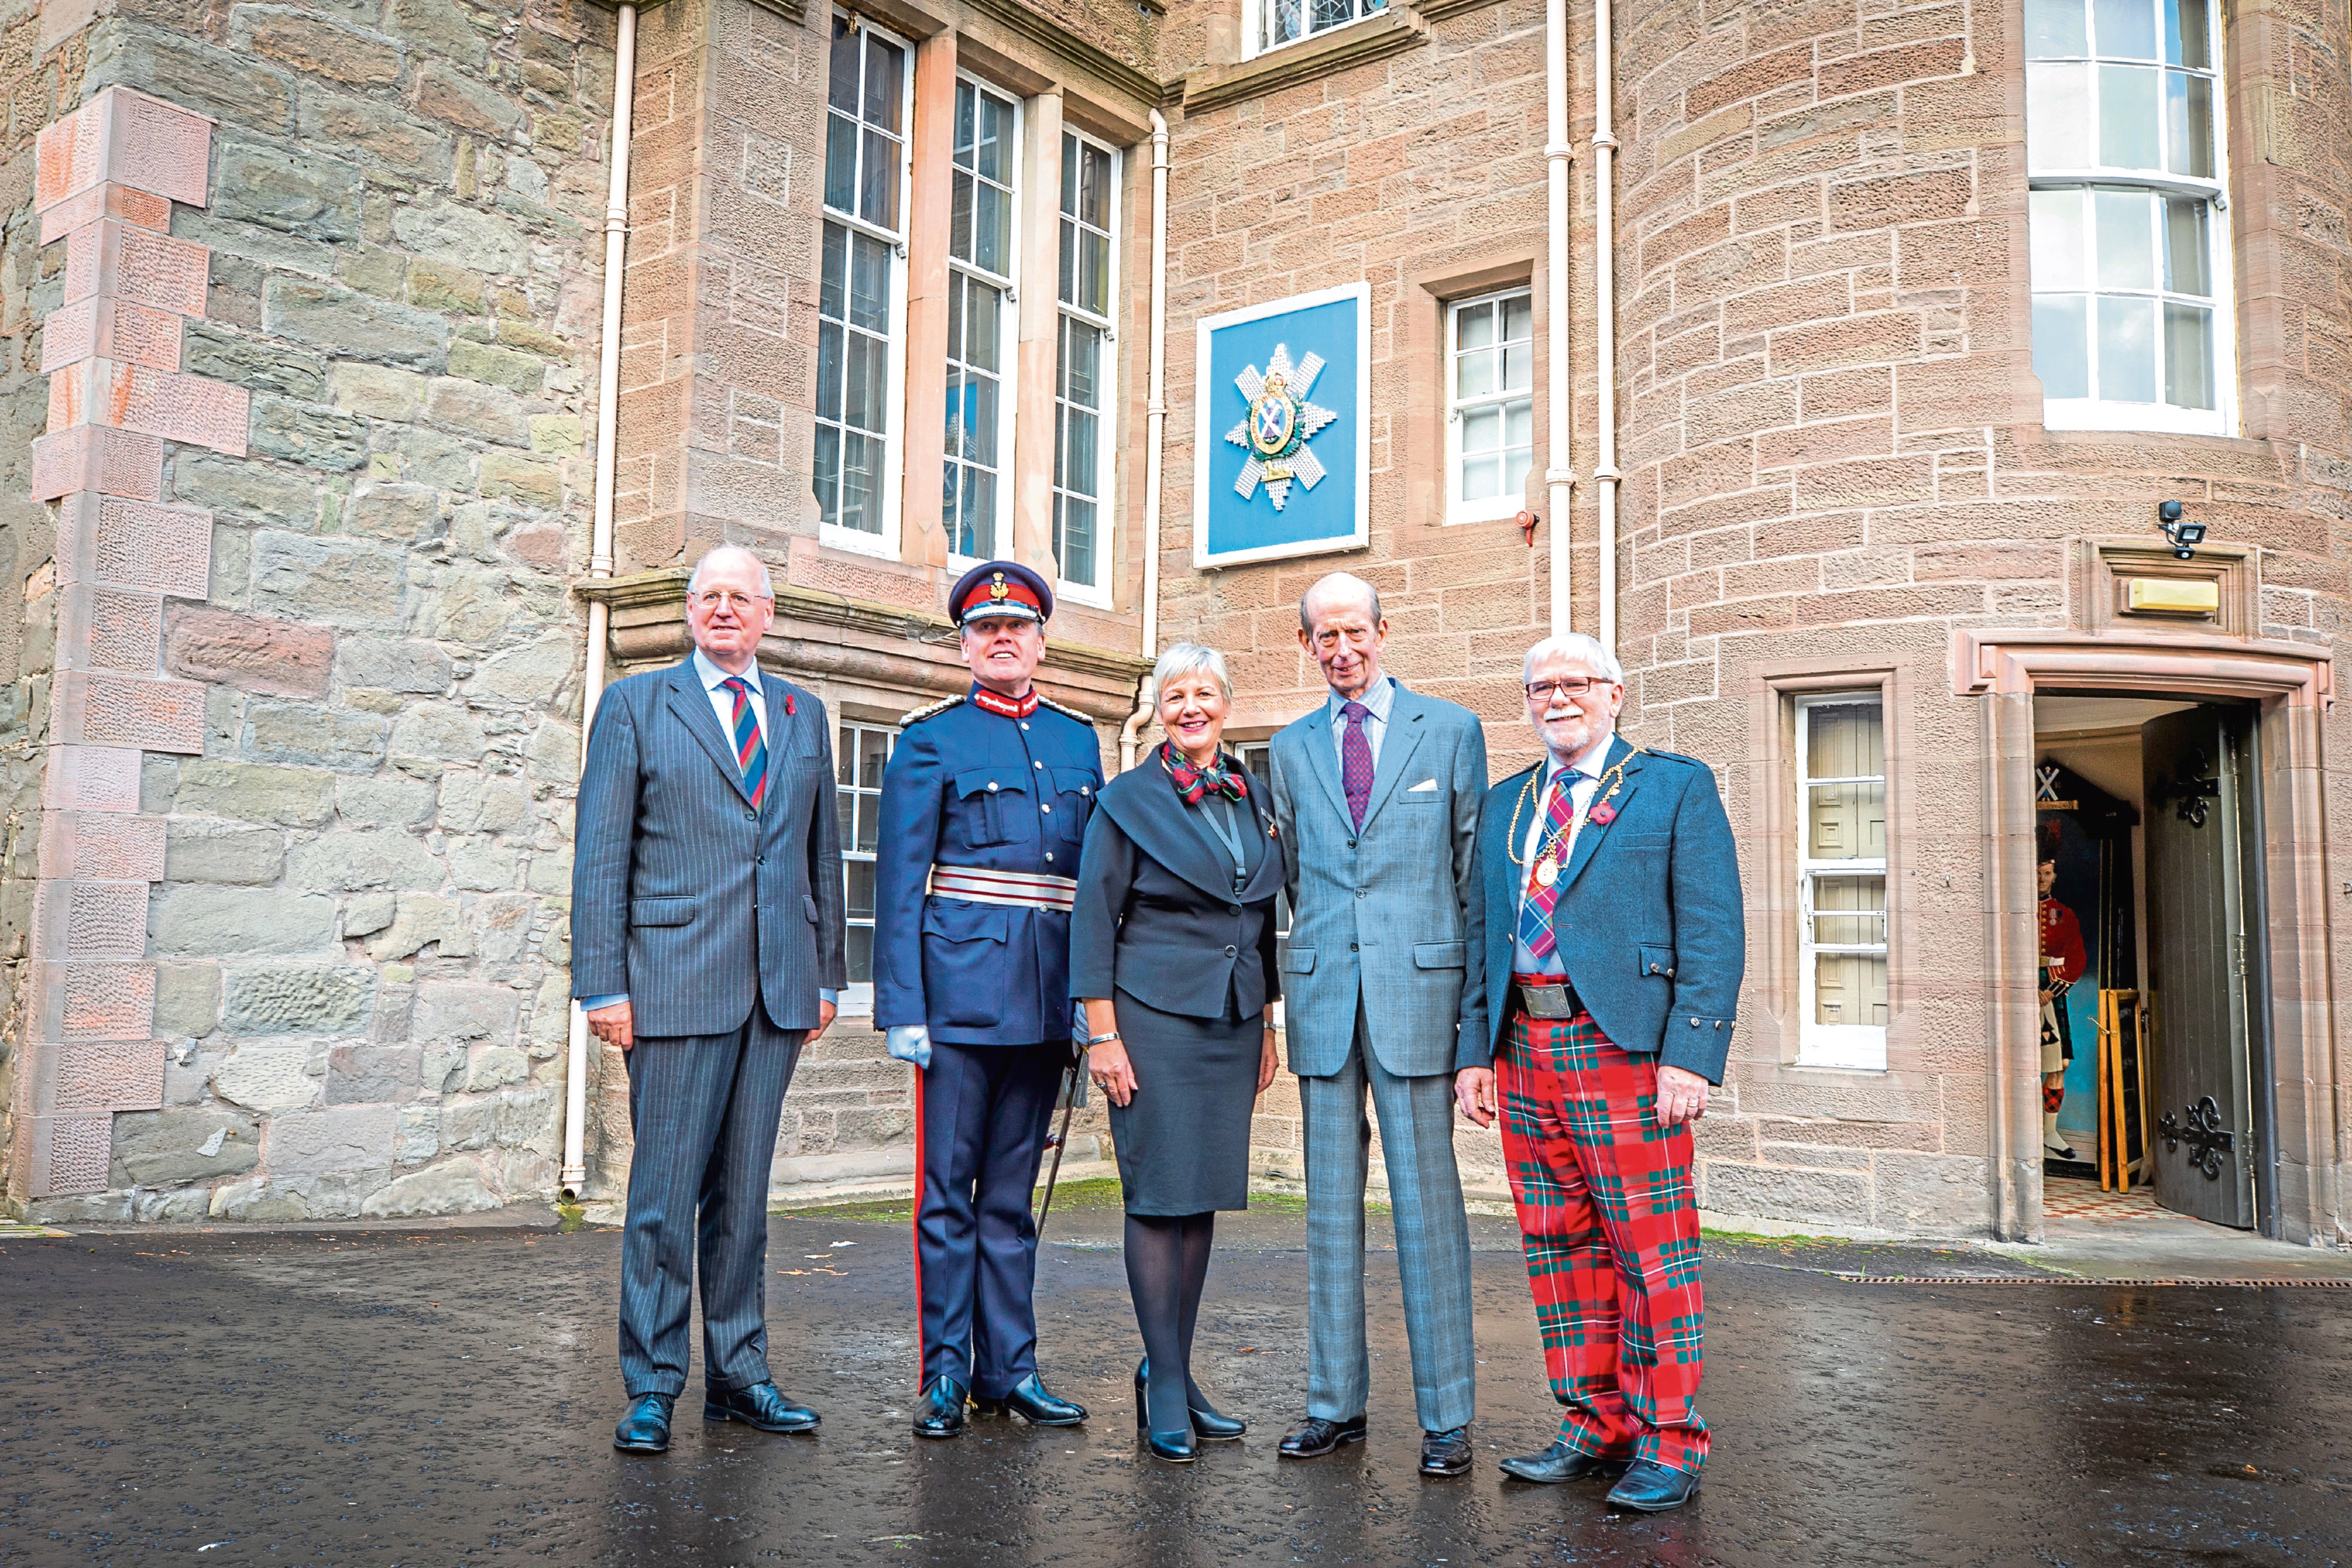 At the museum are, from left, Major General Michael Riddell-Webster, chairman of The Black Watch Castle and Museum Lord Lieutenant Stephen Leckie; Anne Kinnes; the Duke of Kent and Provost Dennis Melloy.